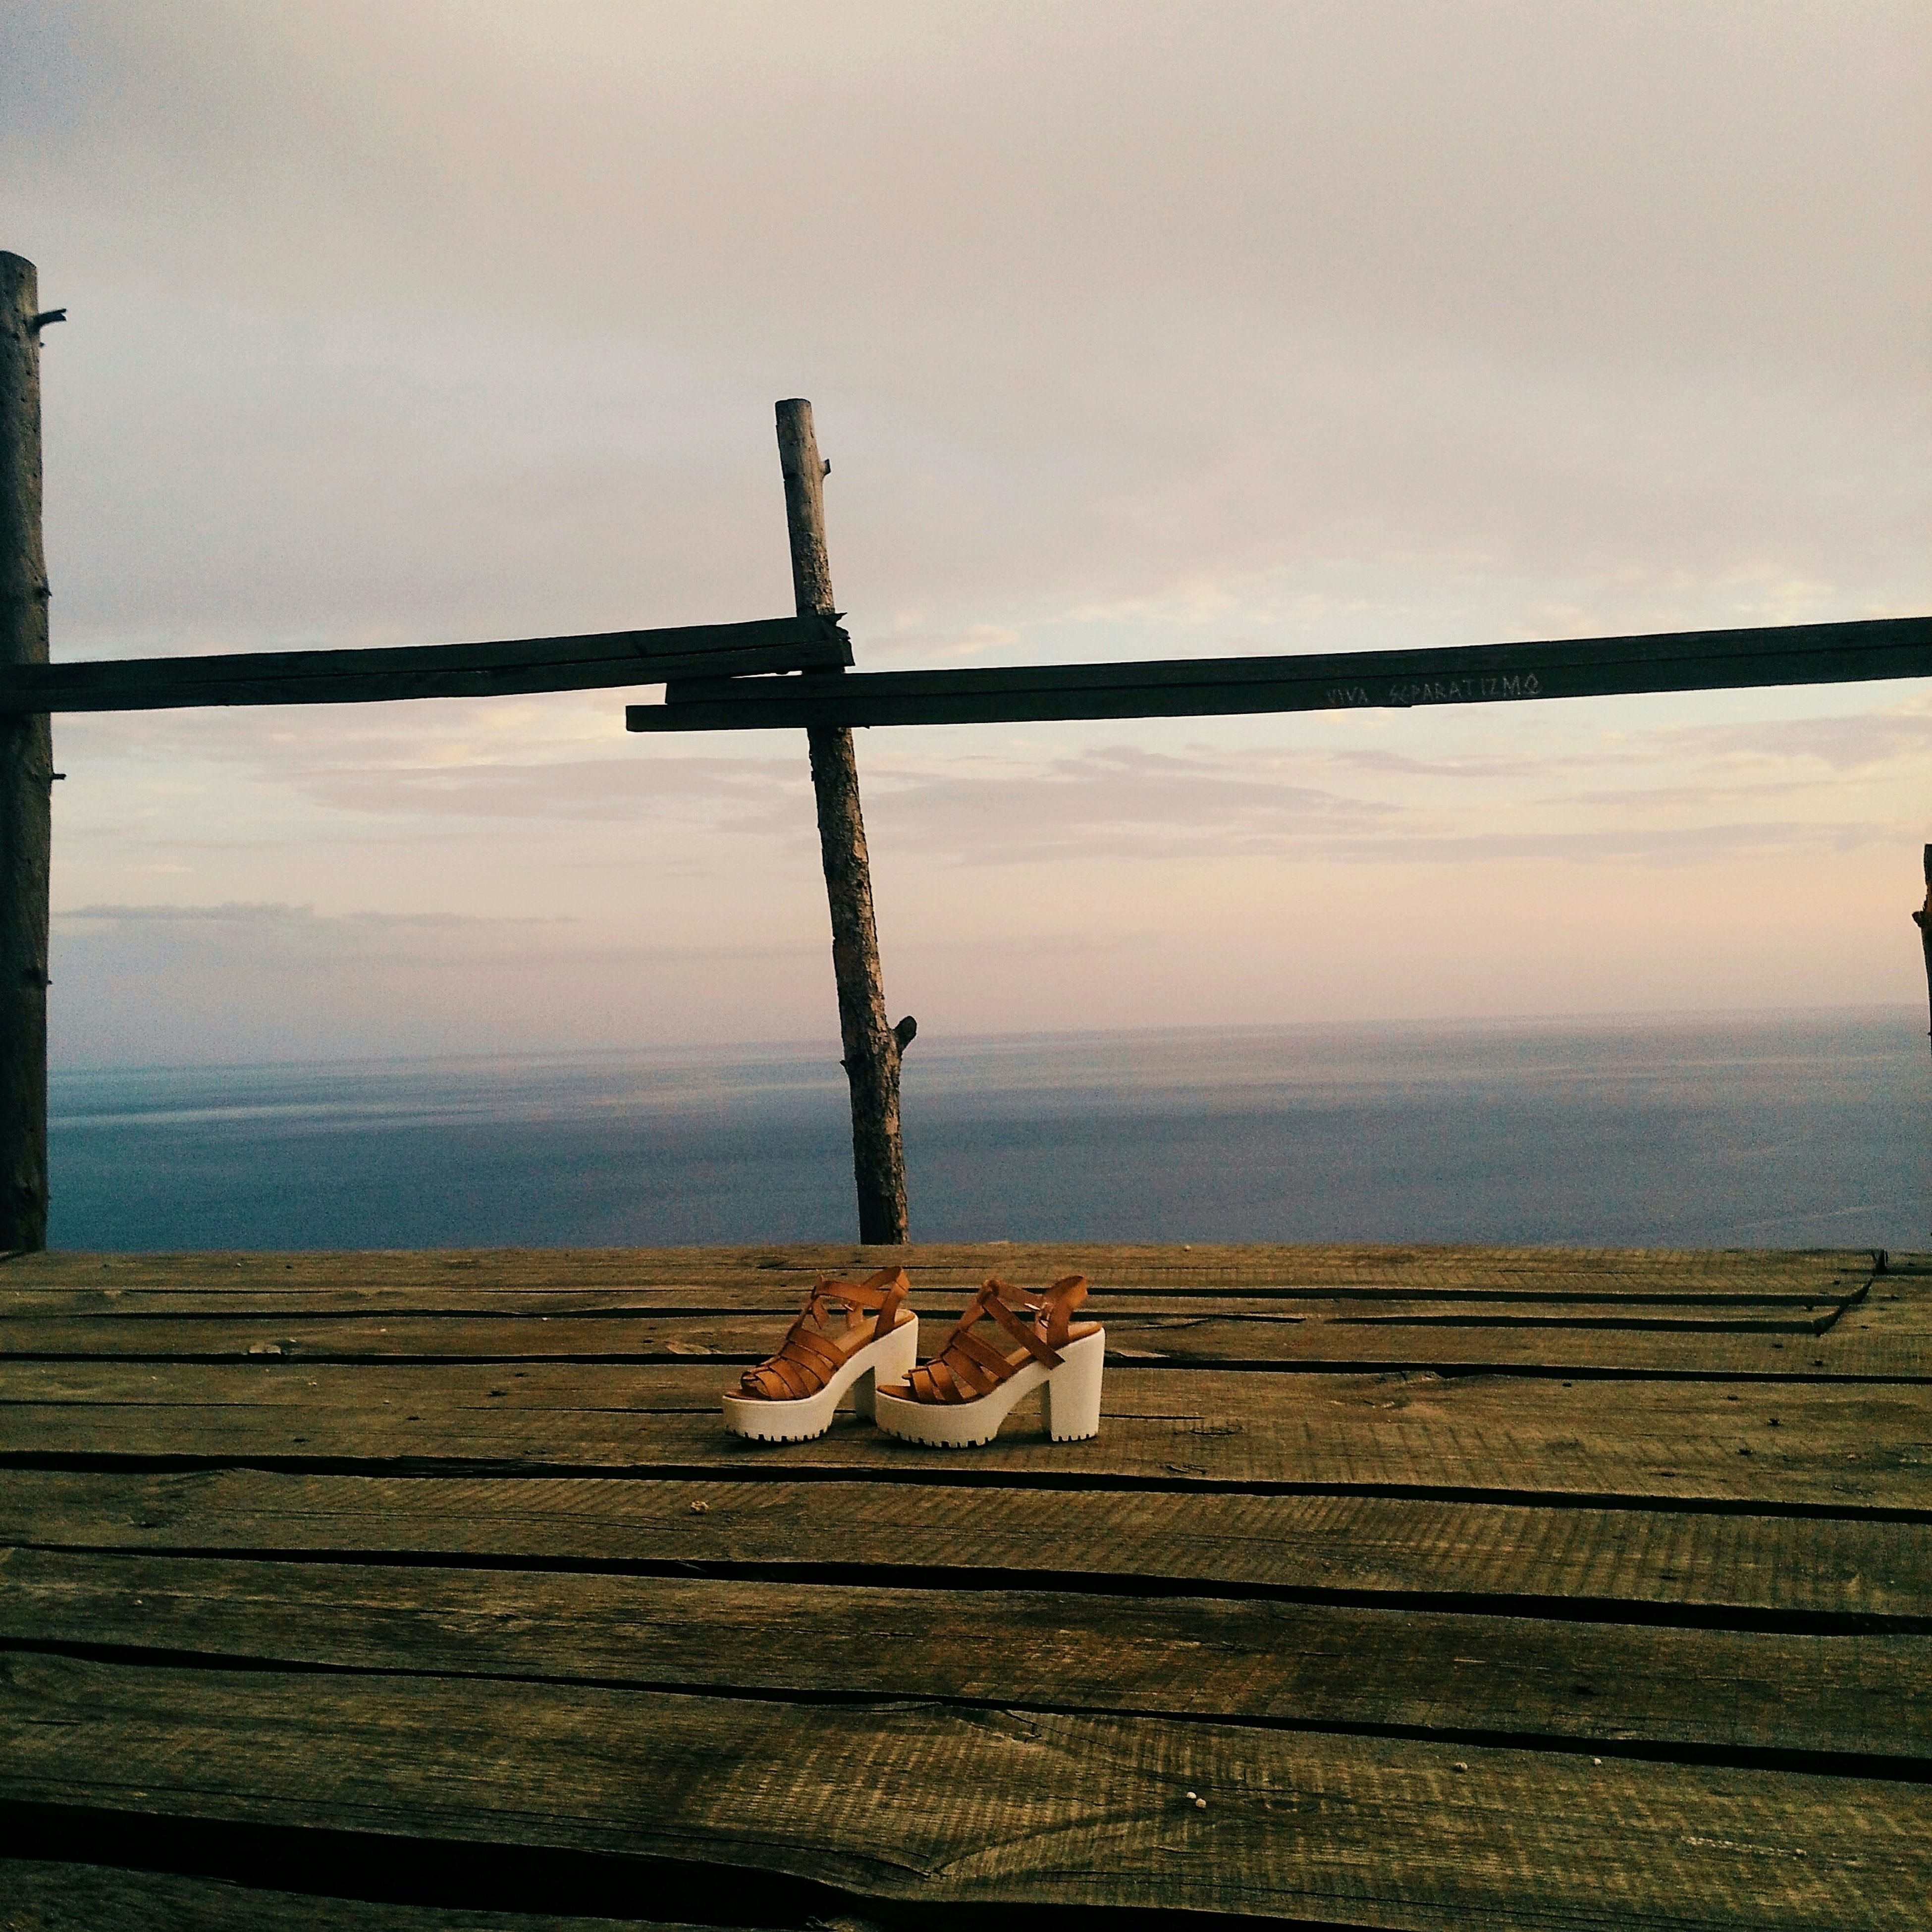 wood - material, sky, tranquility, sea, tranquil scene, sunset, horizon over water, water, scenics, wooden, pier, nature, wood, beauty in nature, idyllic, protection, cloud - sky, fence, bench, safety